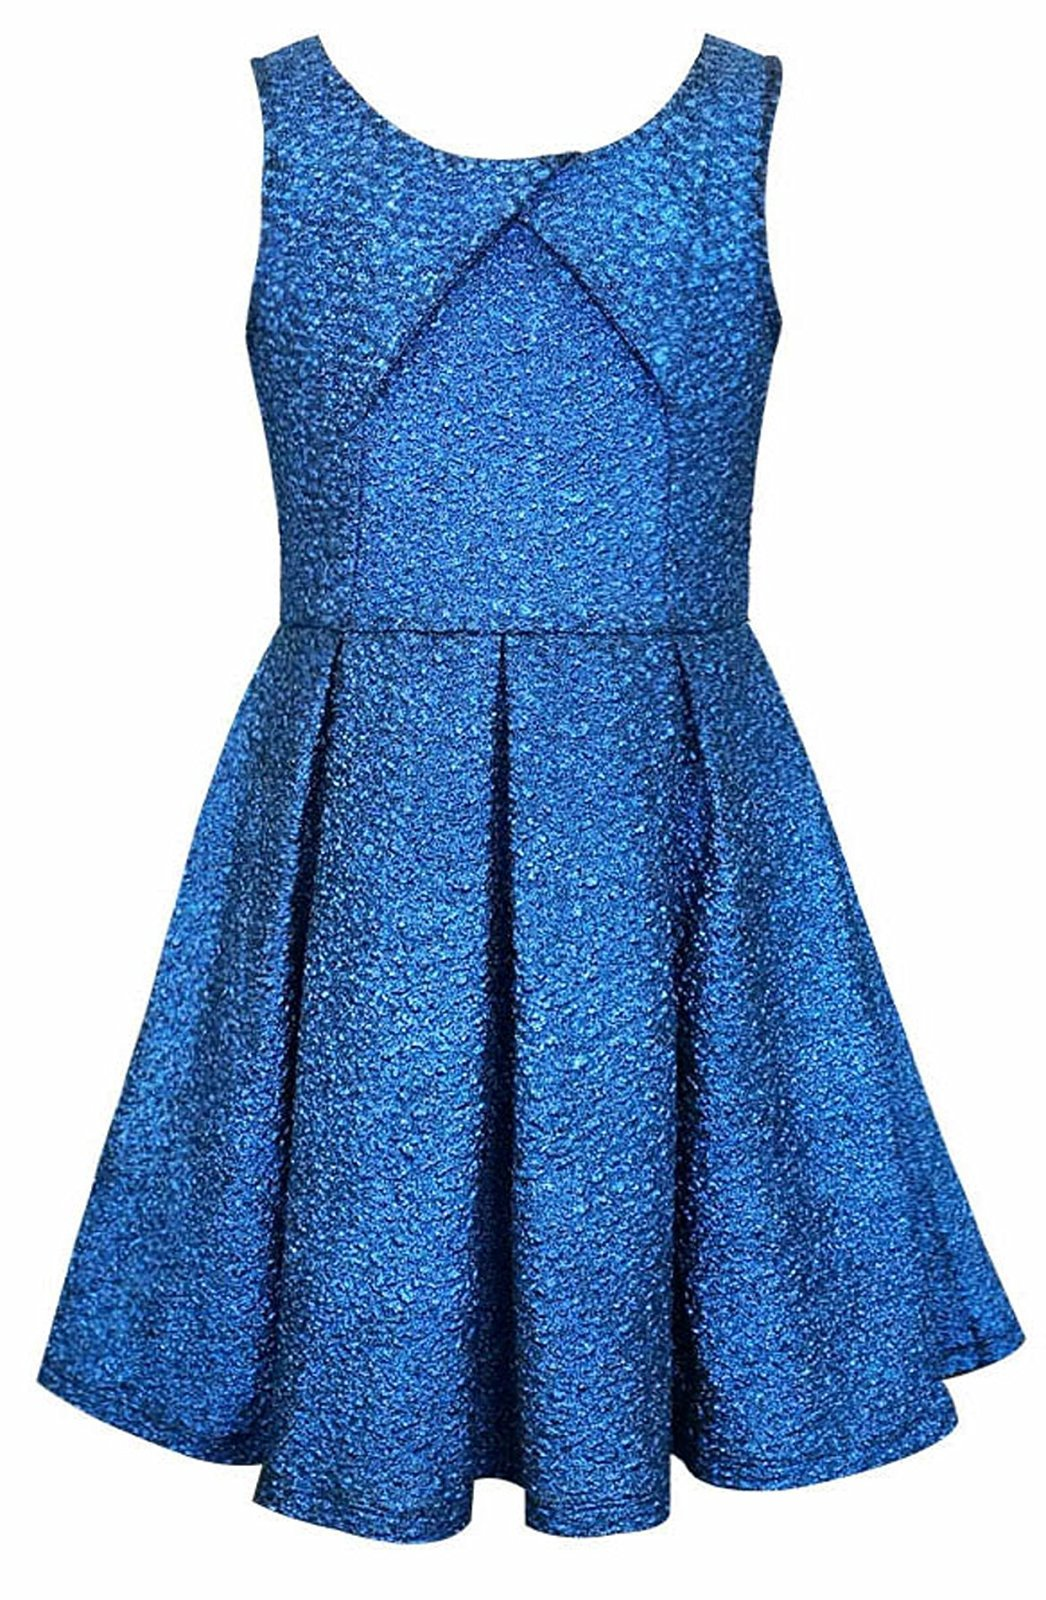 Big Girls Tween 7-16 Blue Cracked Knit Crossover Pleat Fit Flare Social Dress